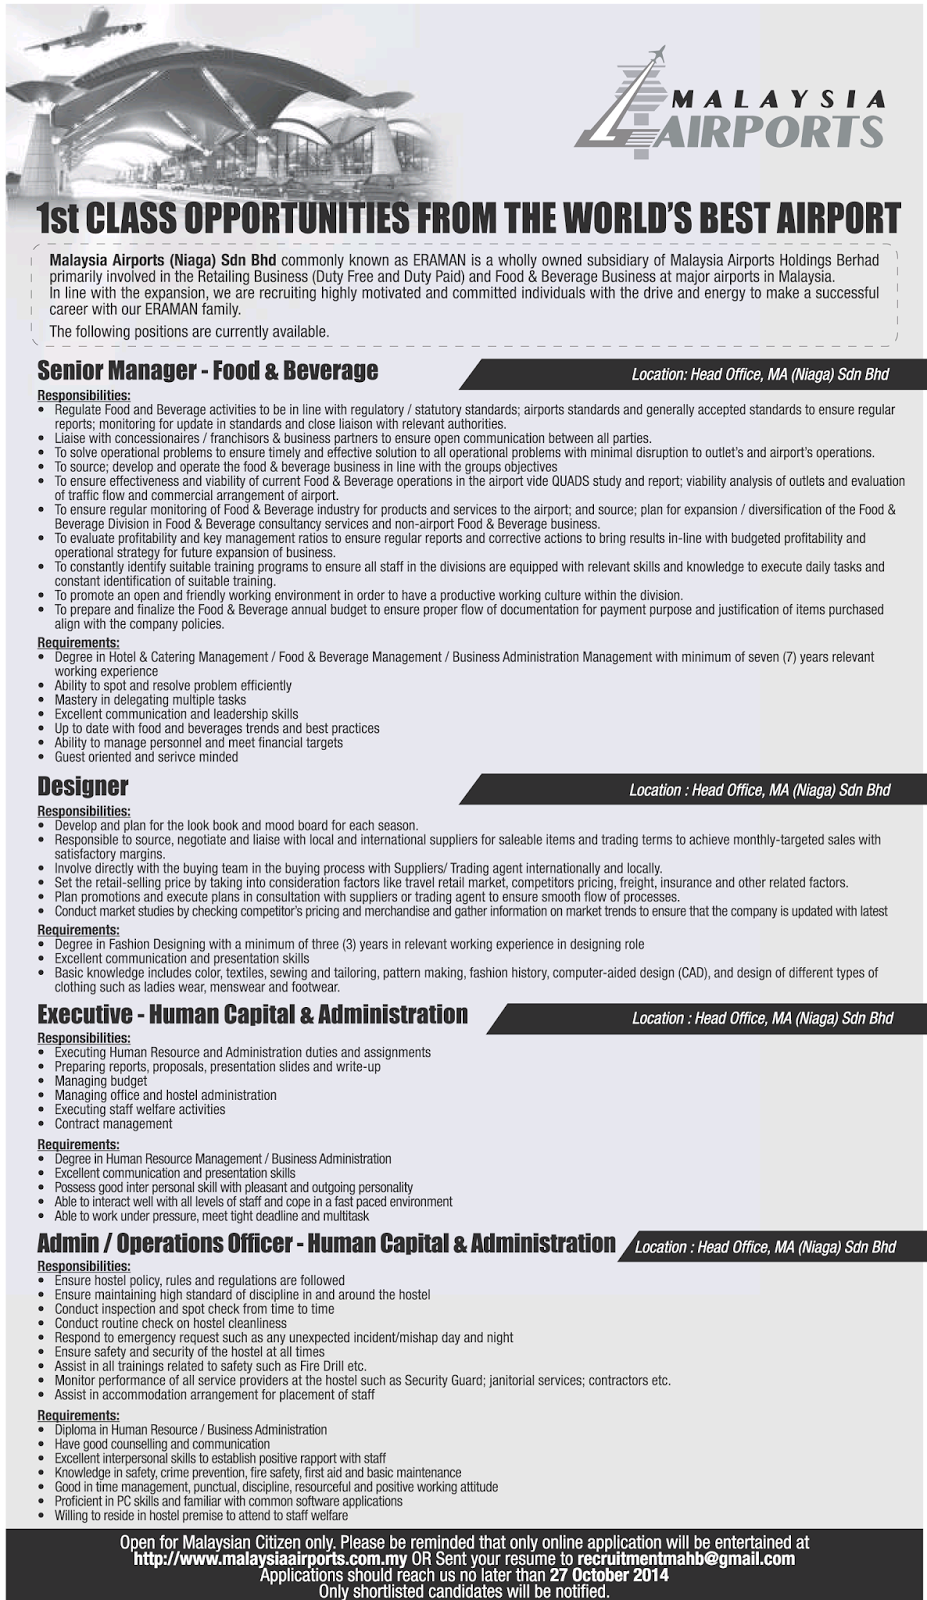 Oil & Gas, Government, and Private Sectors Jobs: October 2014